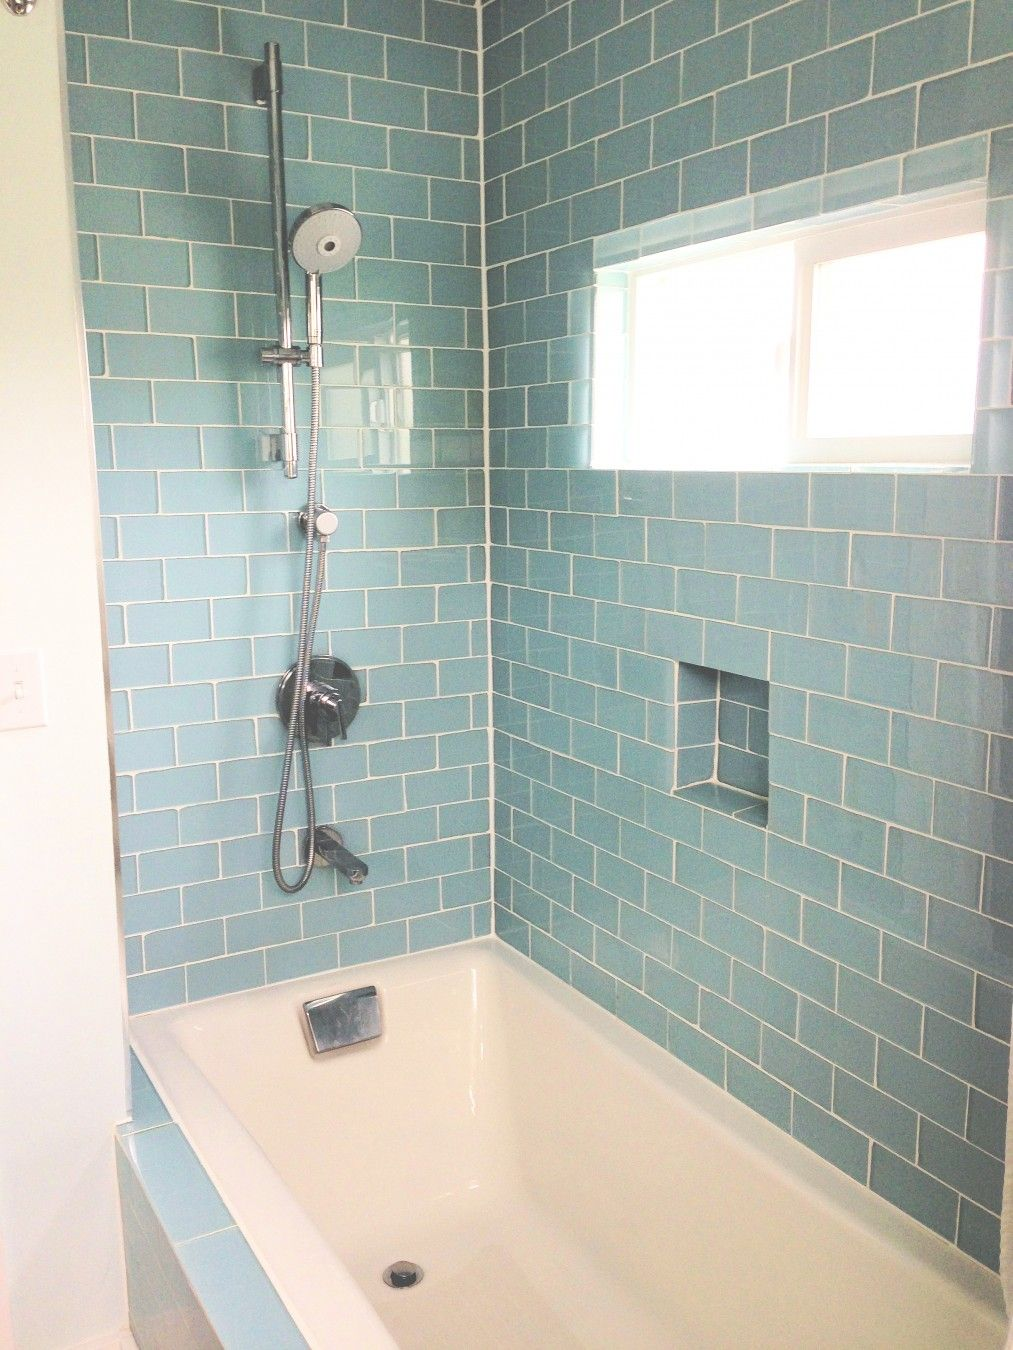 walls-vapor-glass-subway-tile-4x12-subway-tile- ziggy on toilet in ...